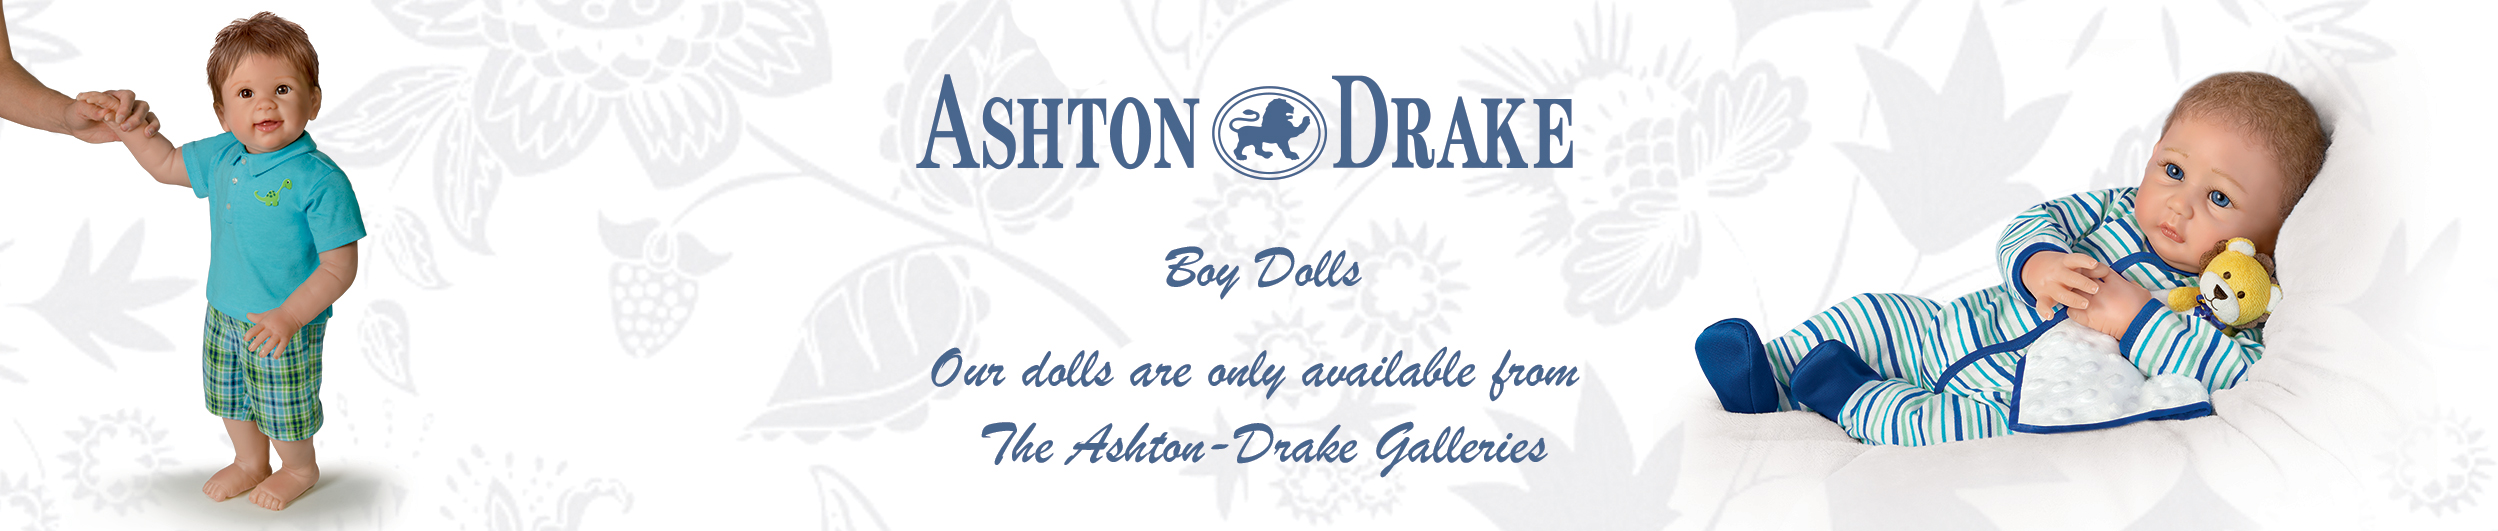 Ashton-Drake Boy Dolls